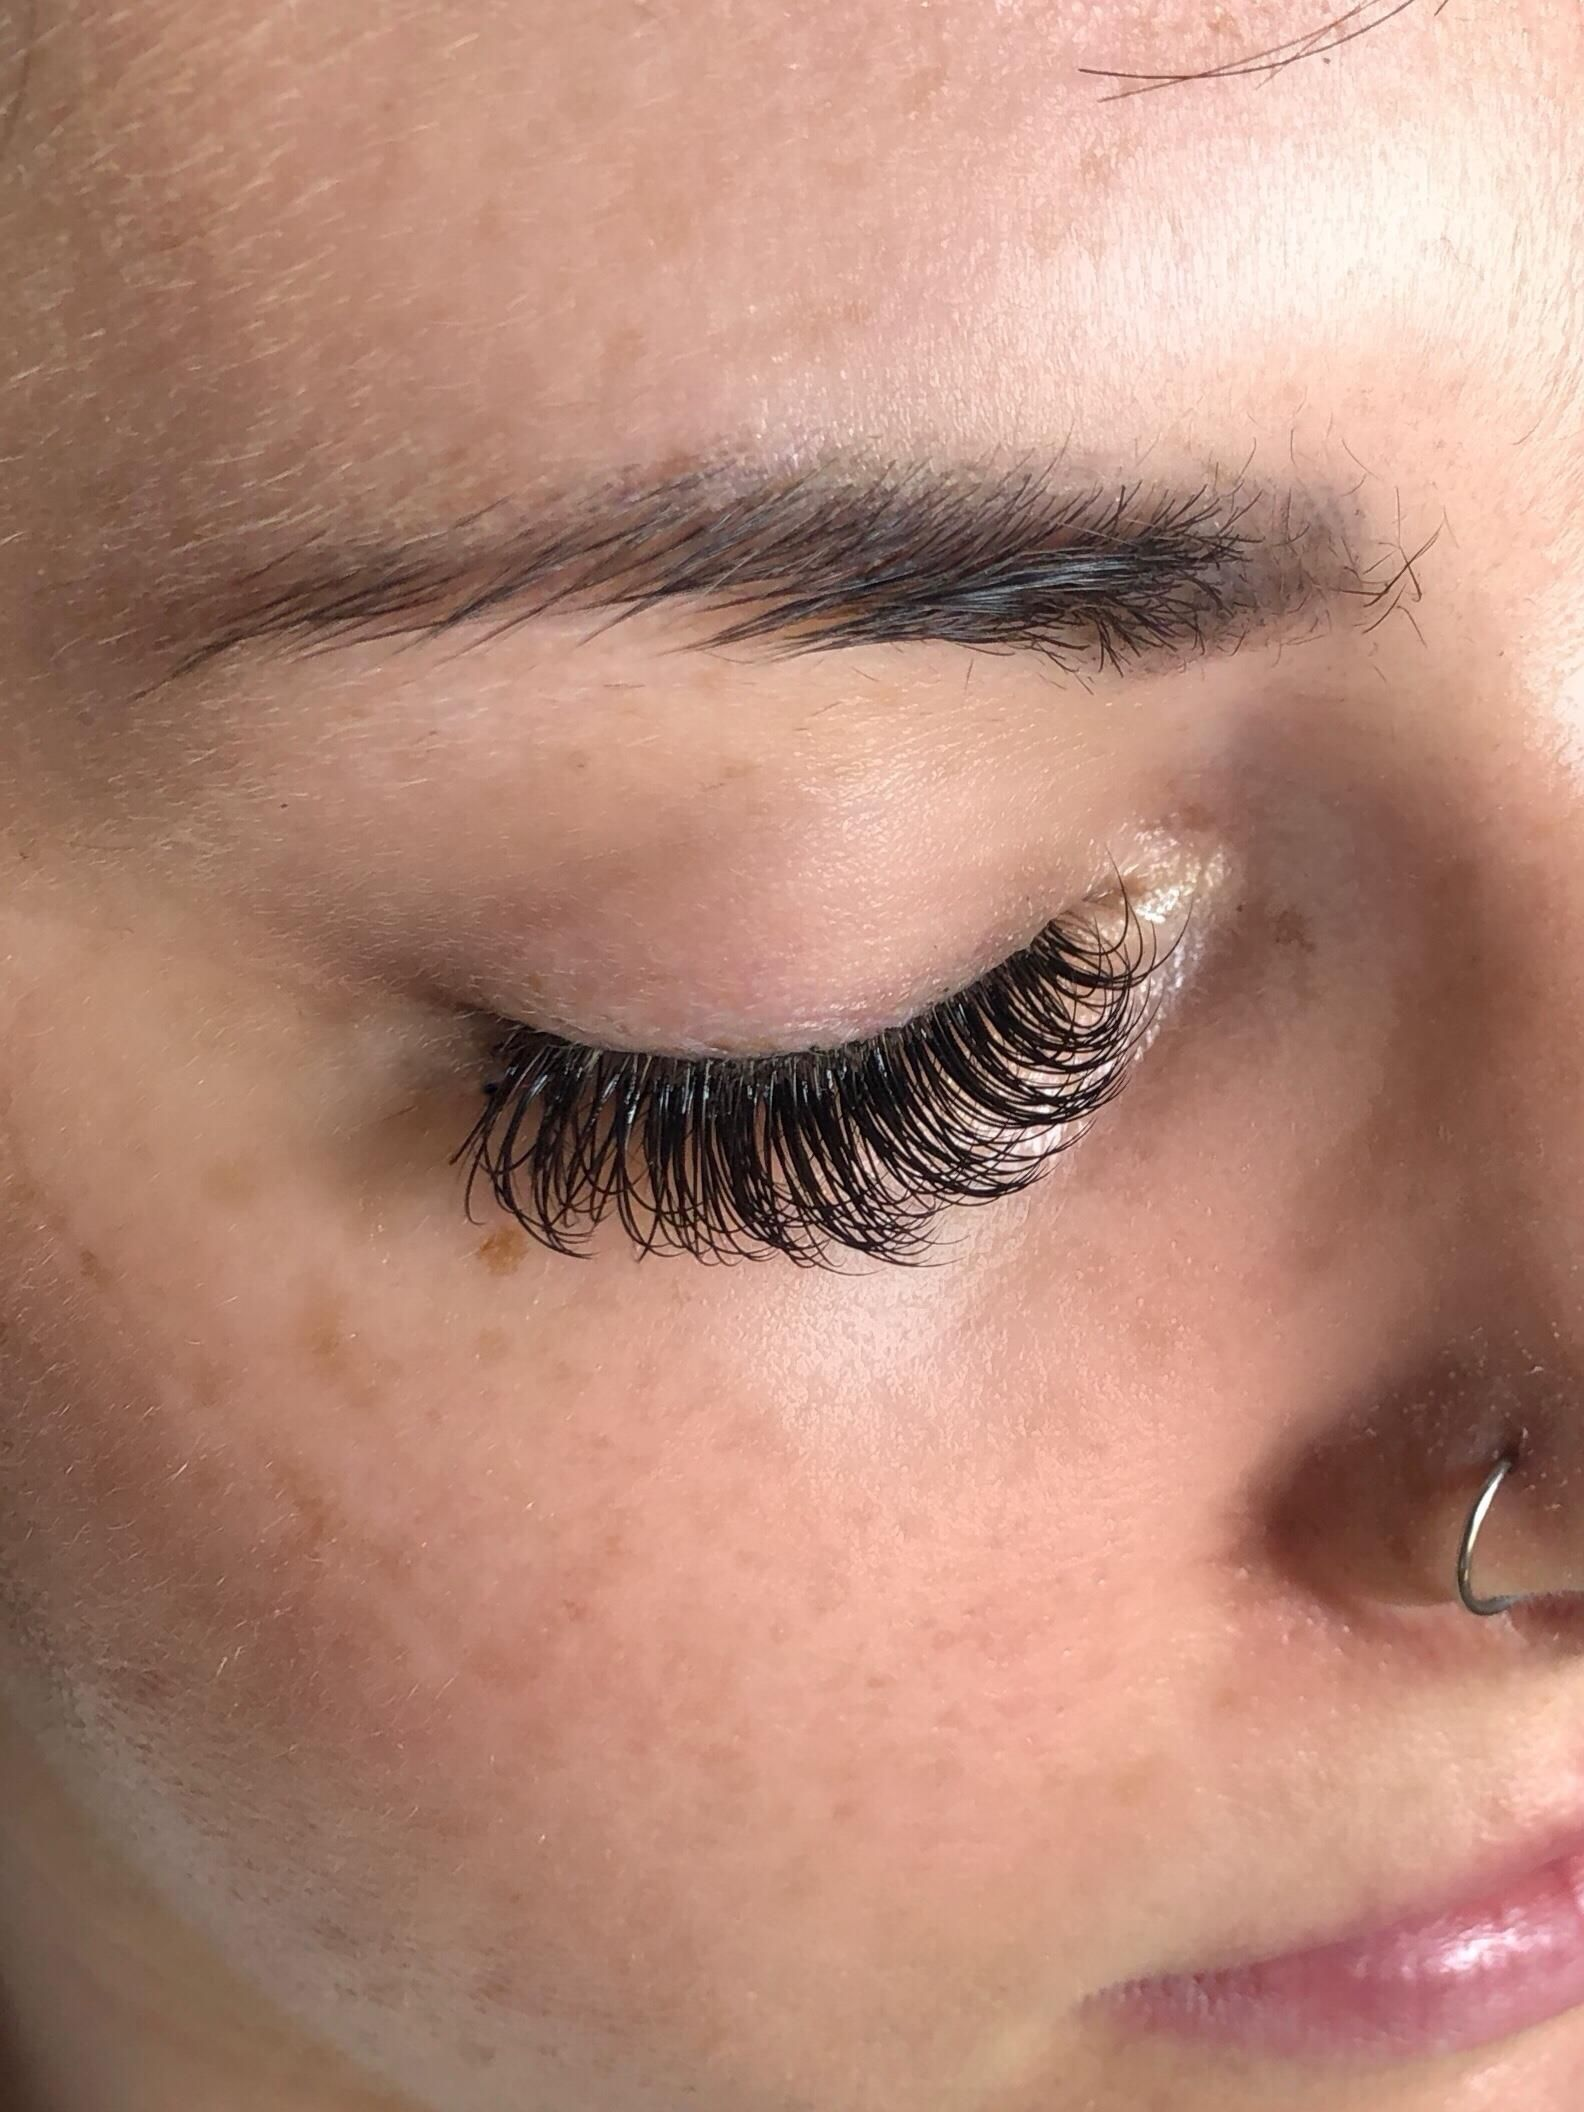 dcf981b44b6 Classic Full Set $160 Doll Eye. Find this Pin and more on Eye Lashes  Extension ...